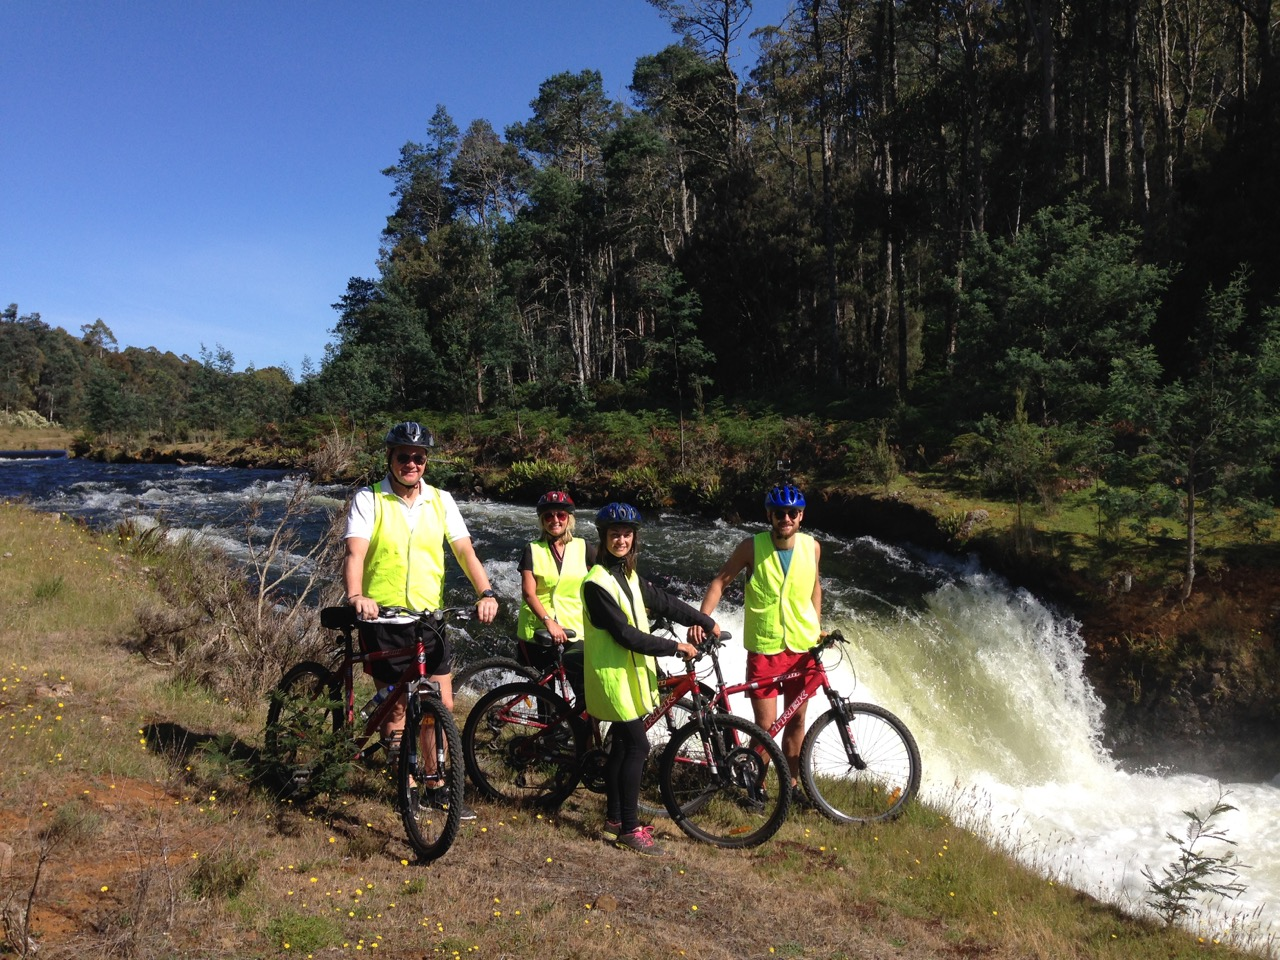 bicyclists near a waterfall